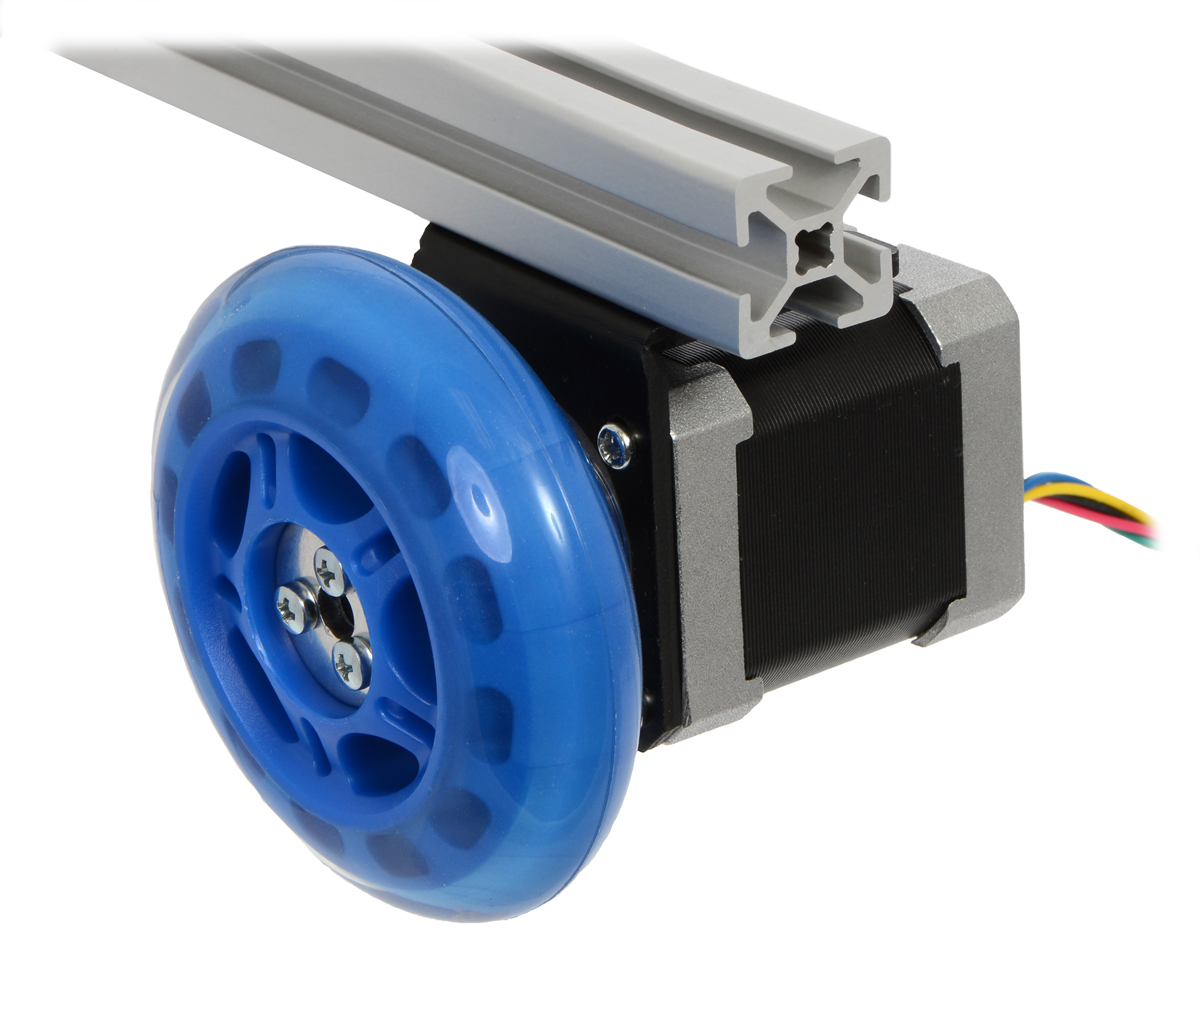 A Stepper Motor Connected To Scooter Wheel By The 5 Mm Adapter